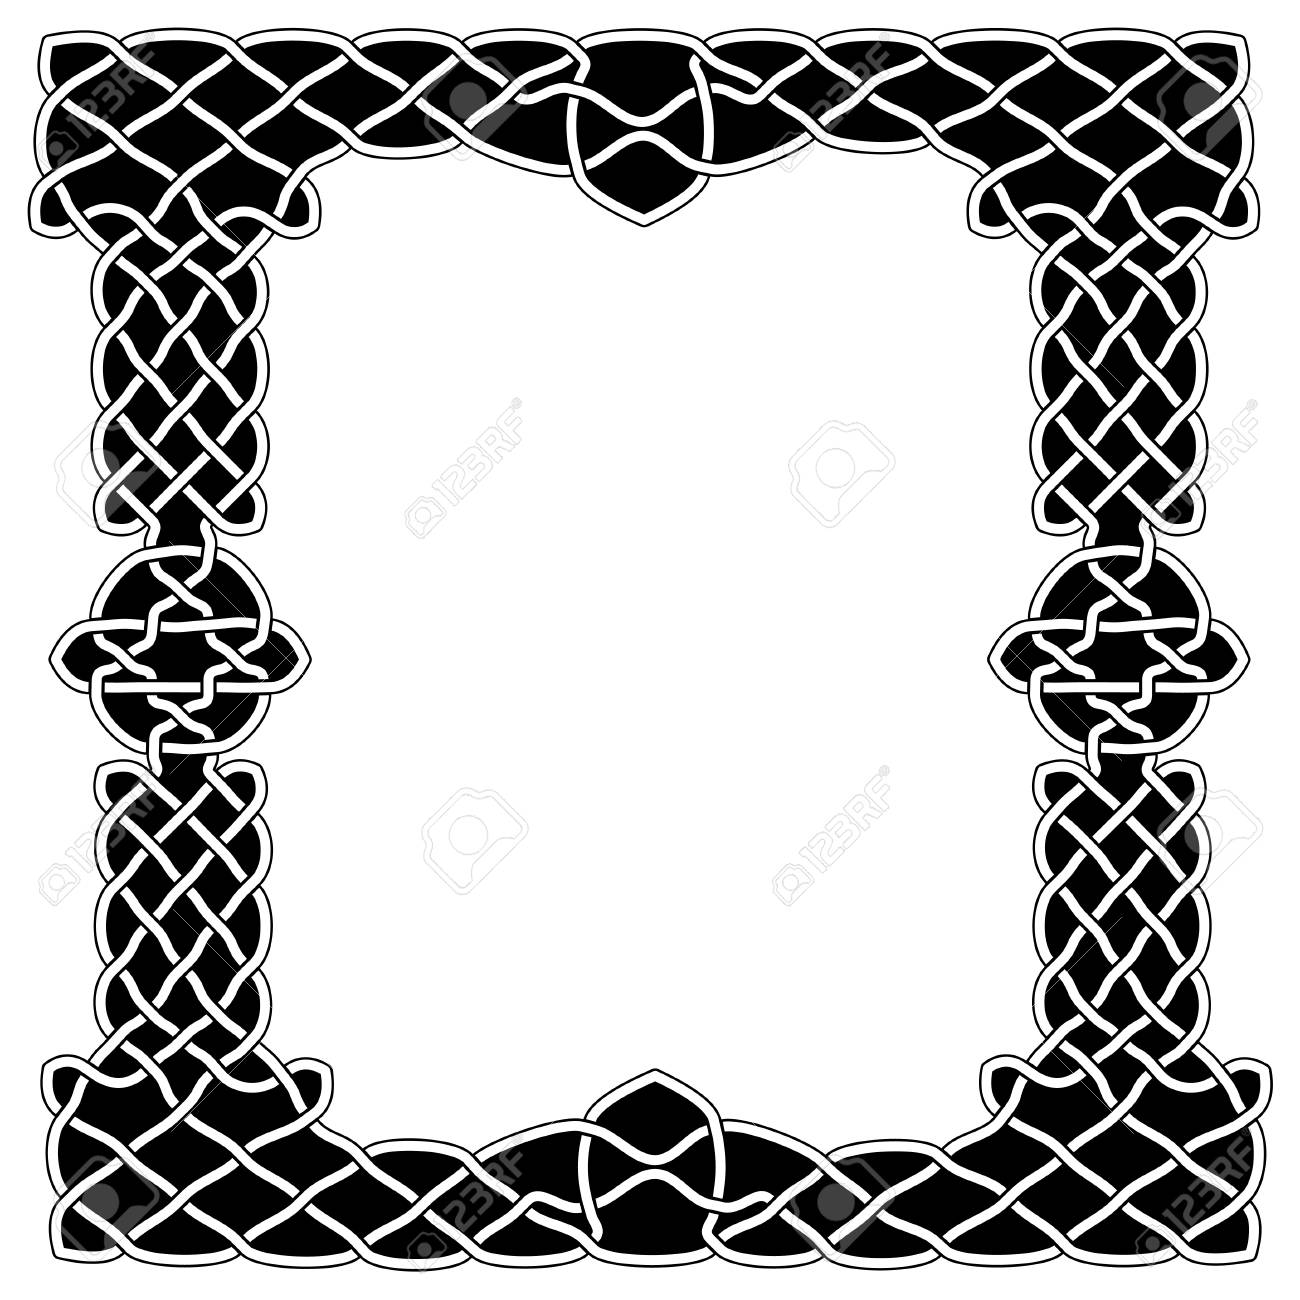 Borders, Frames, Shows The Black And White Colors Imitating Arabic ...